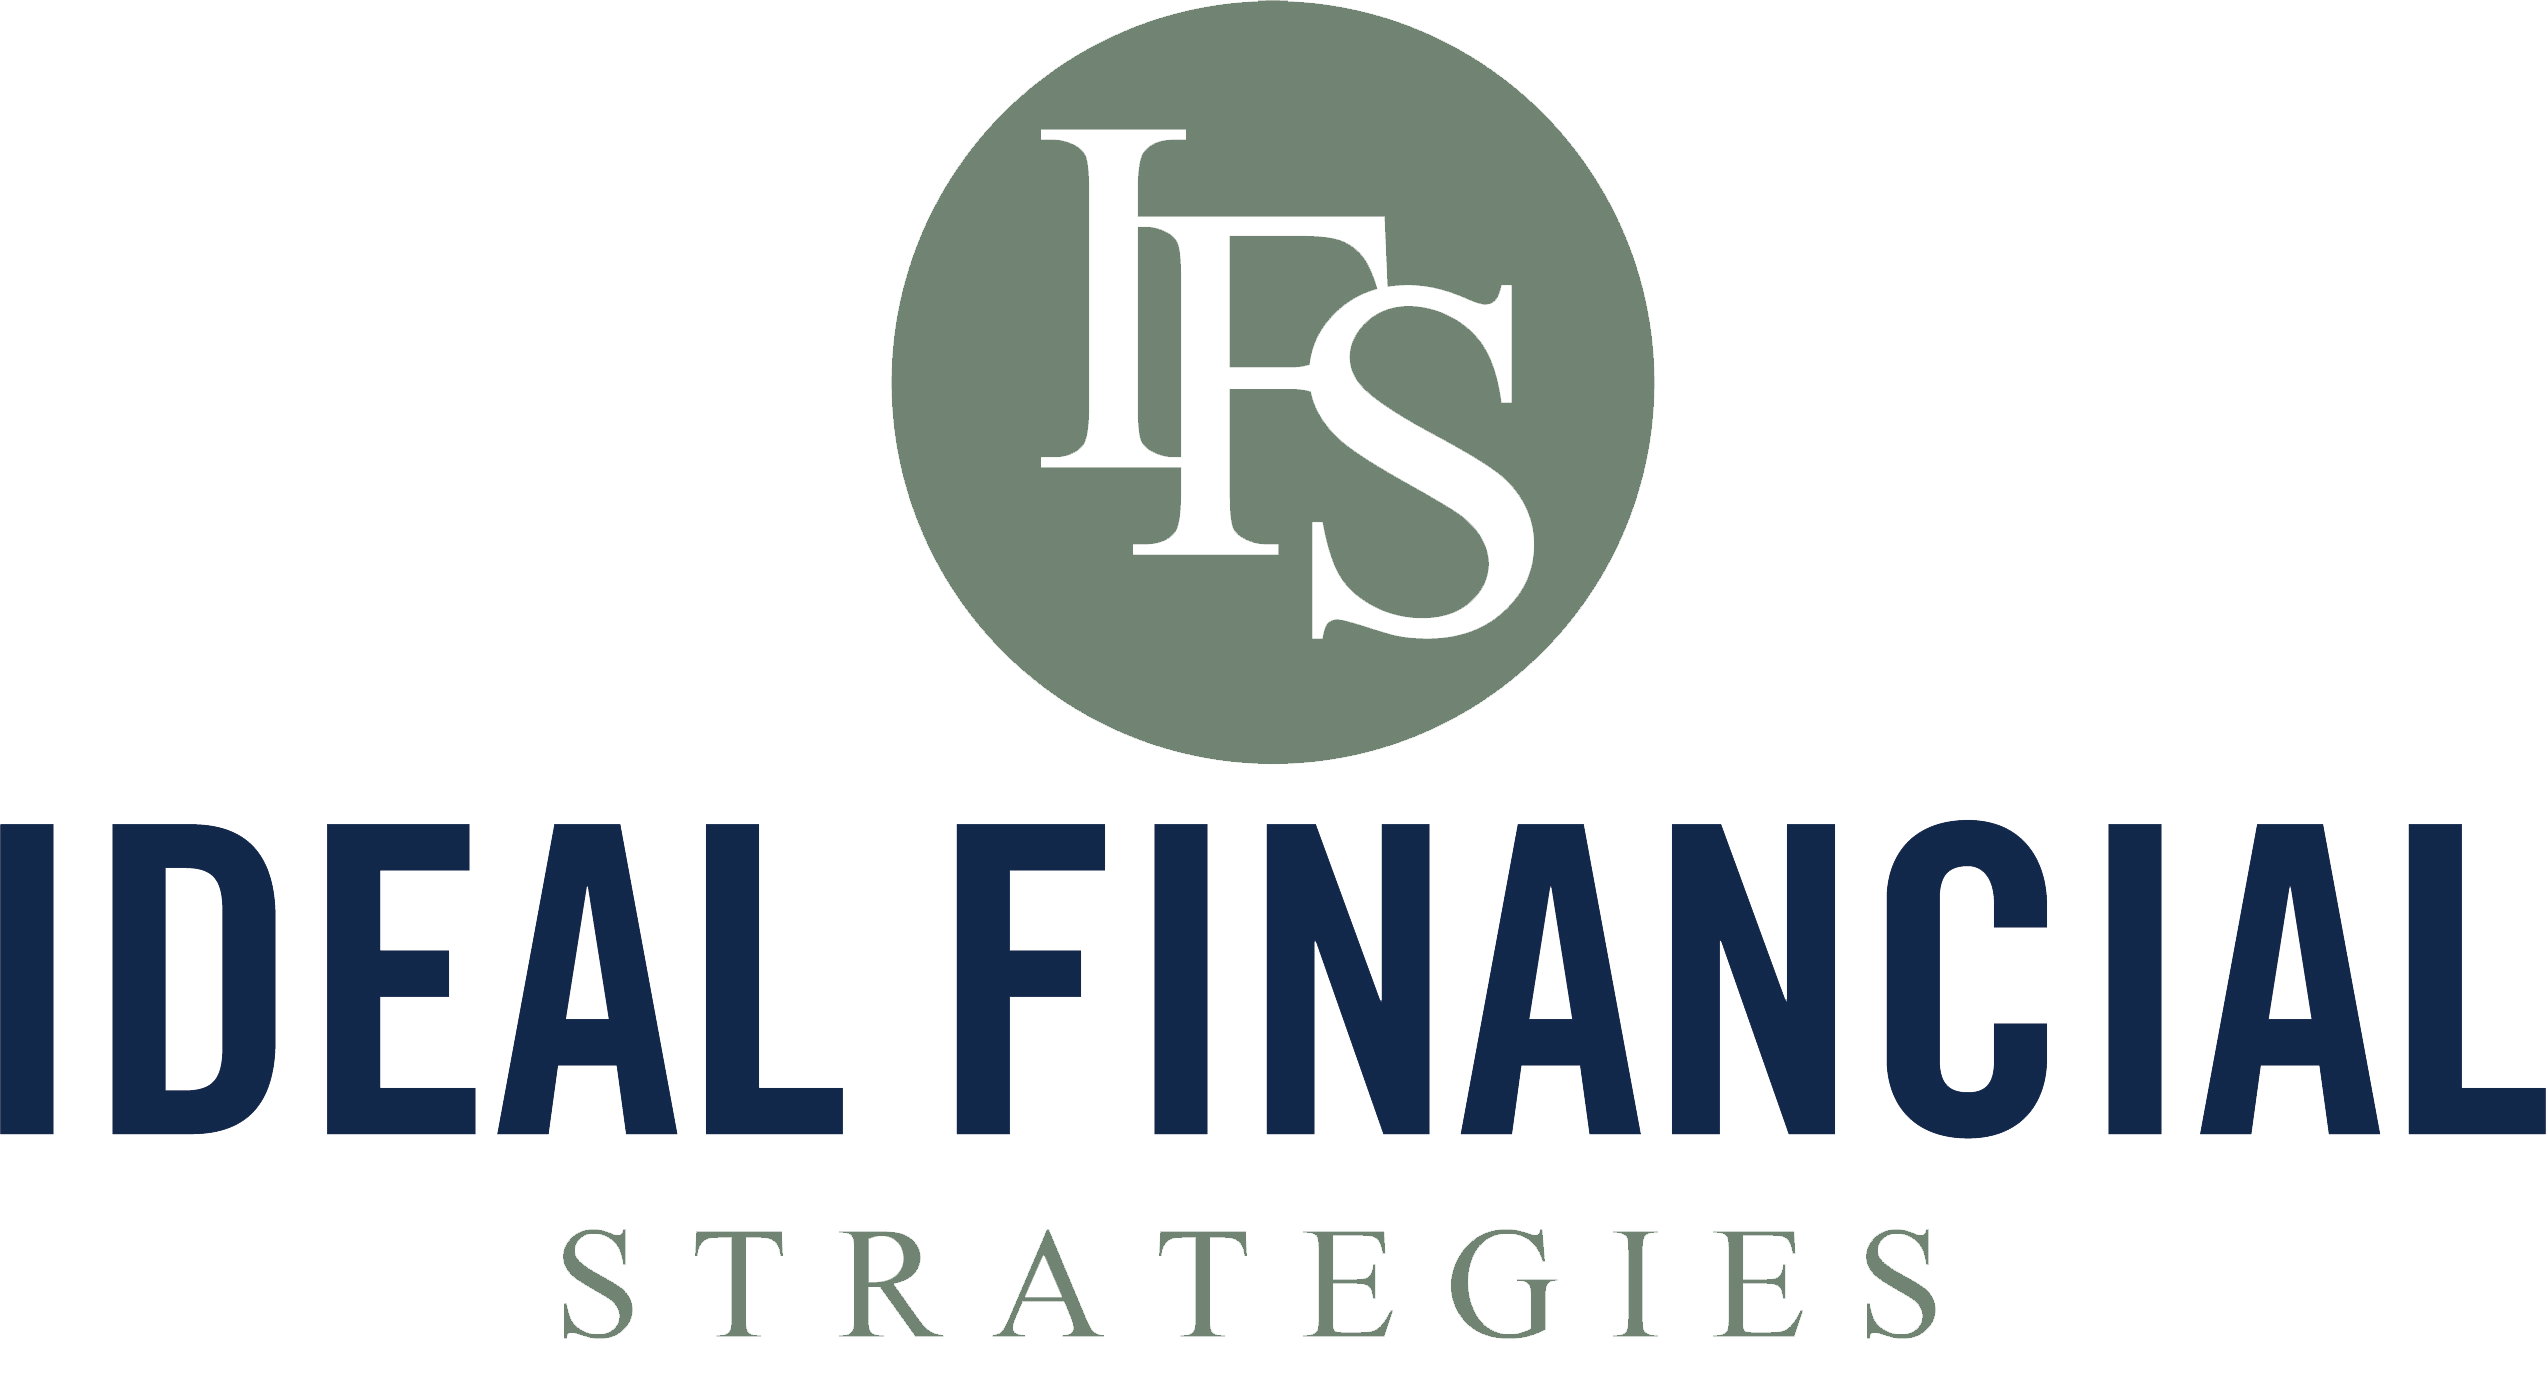 Ideal Financial Strategies